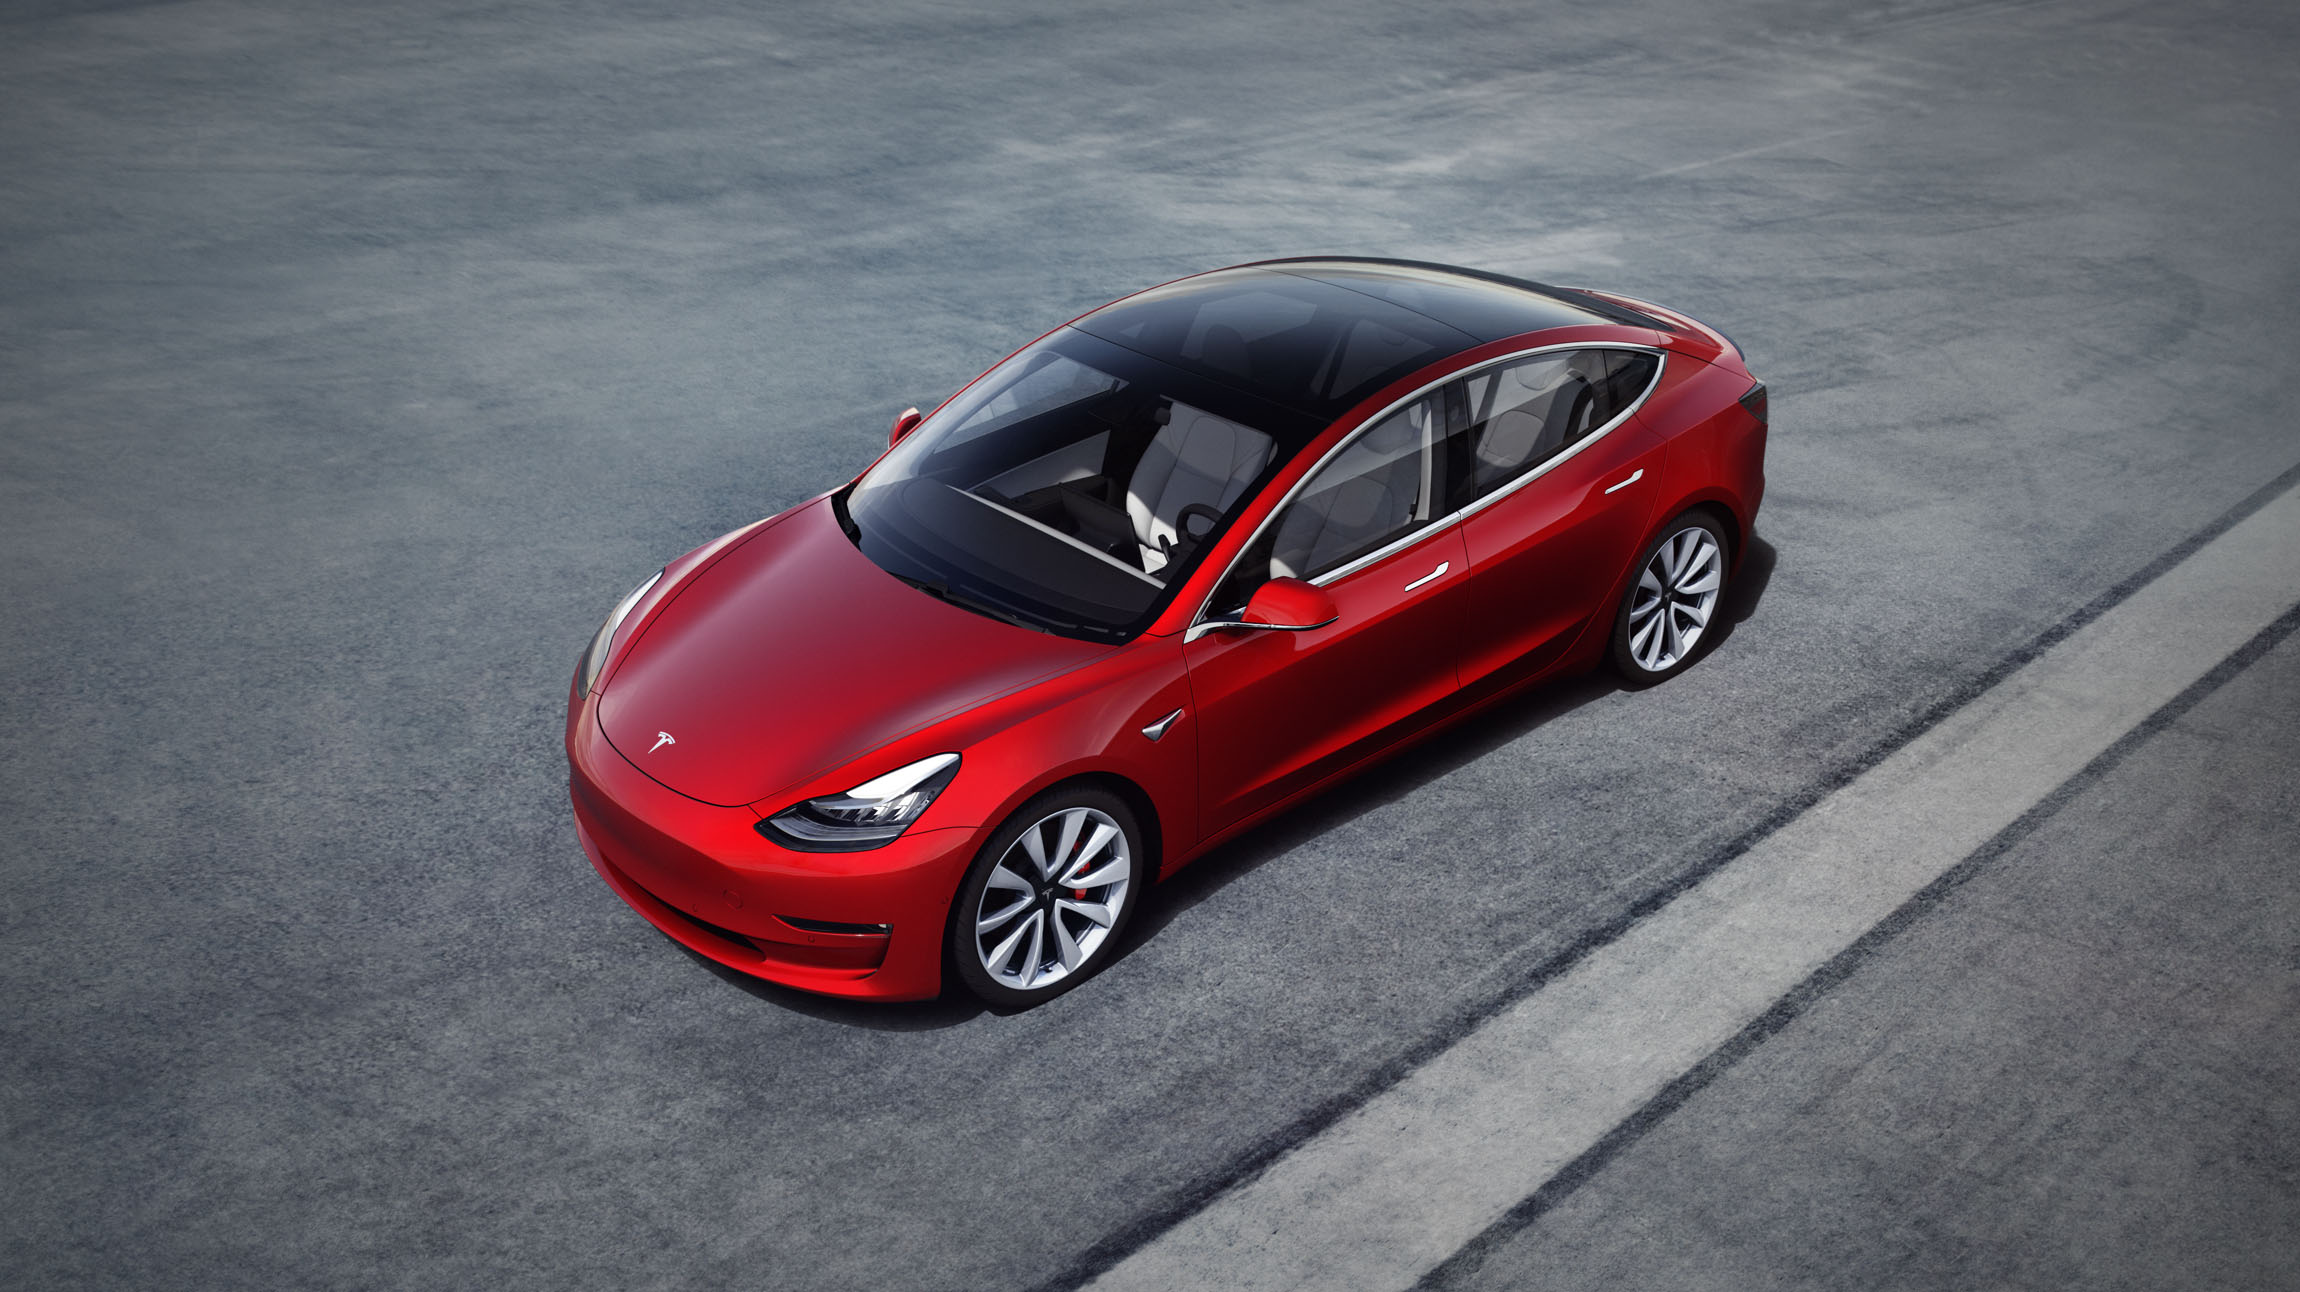 Car Manufacturers Reliability List Tesla Model 3 Loses Consumer Reports Recommendation Over